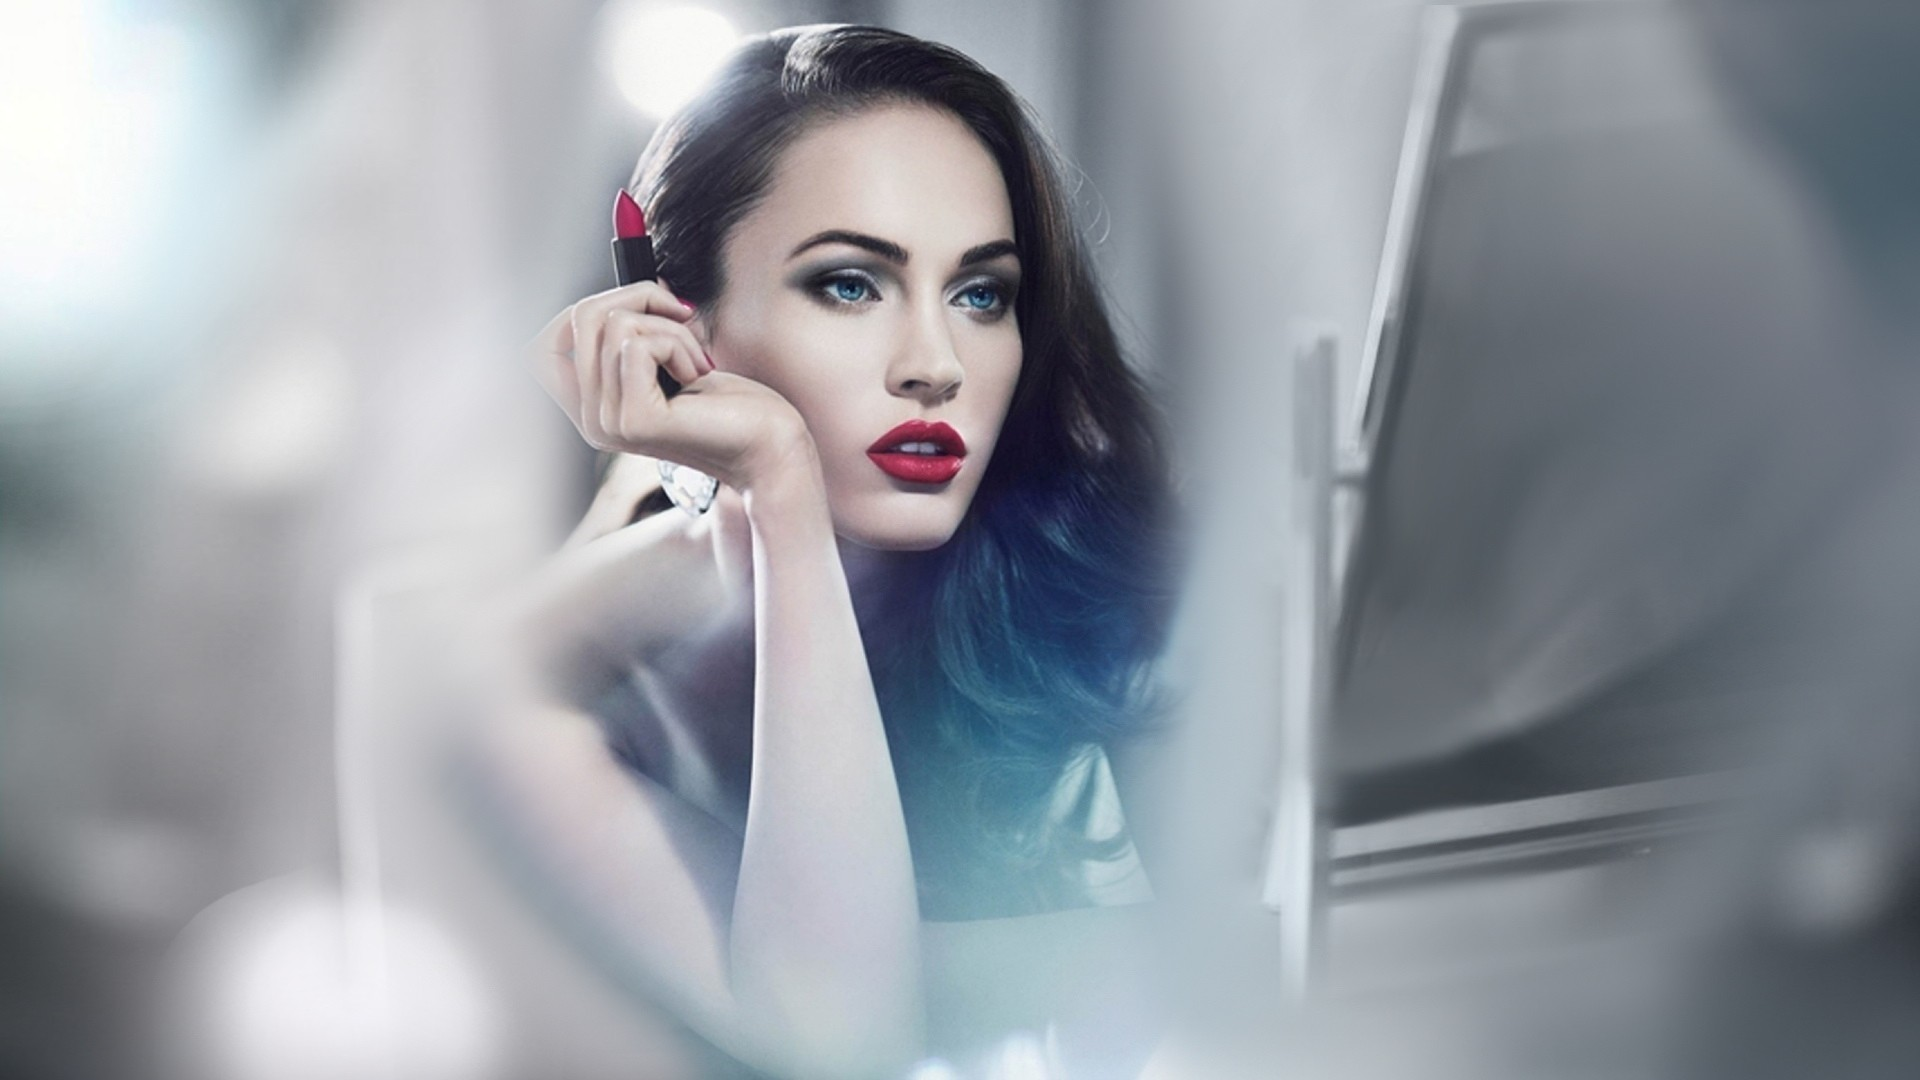 Megan Fox Backgrounds